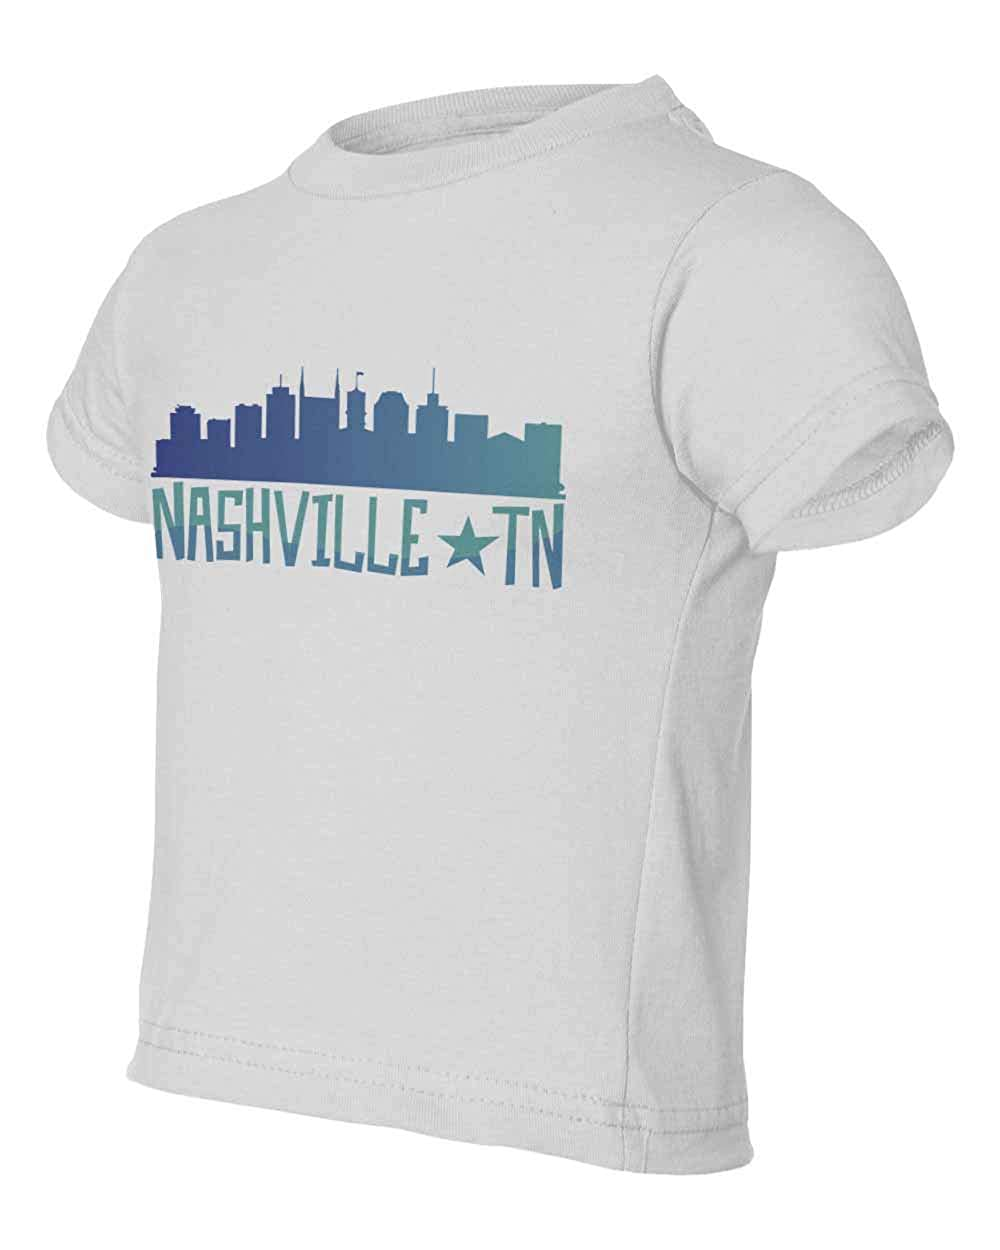 City Skyline Nashville Tennessee Graphic Youth /& Toddler Tee Shirt